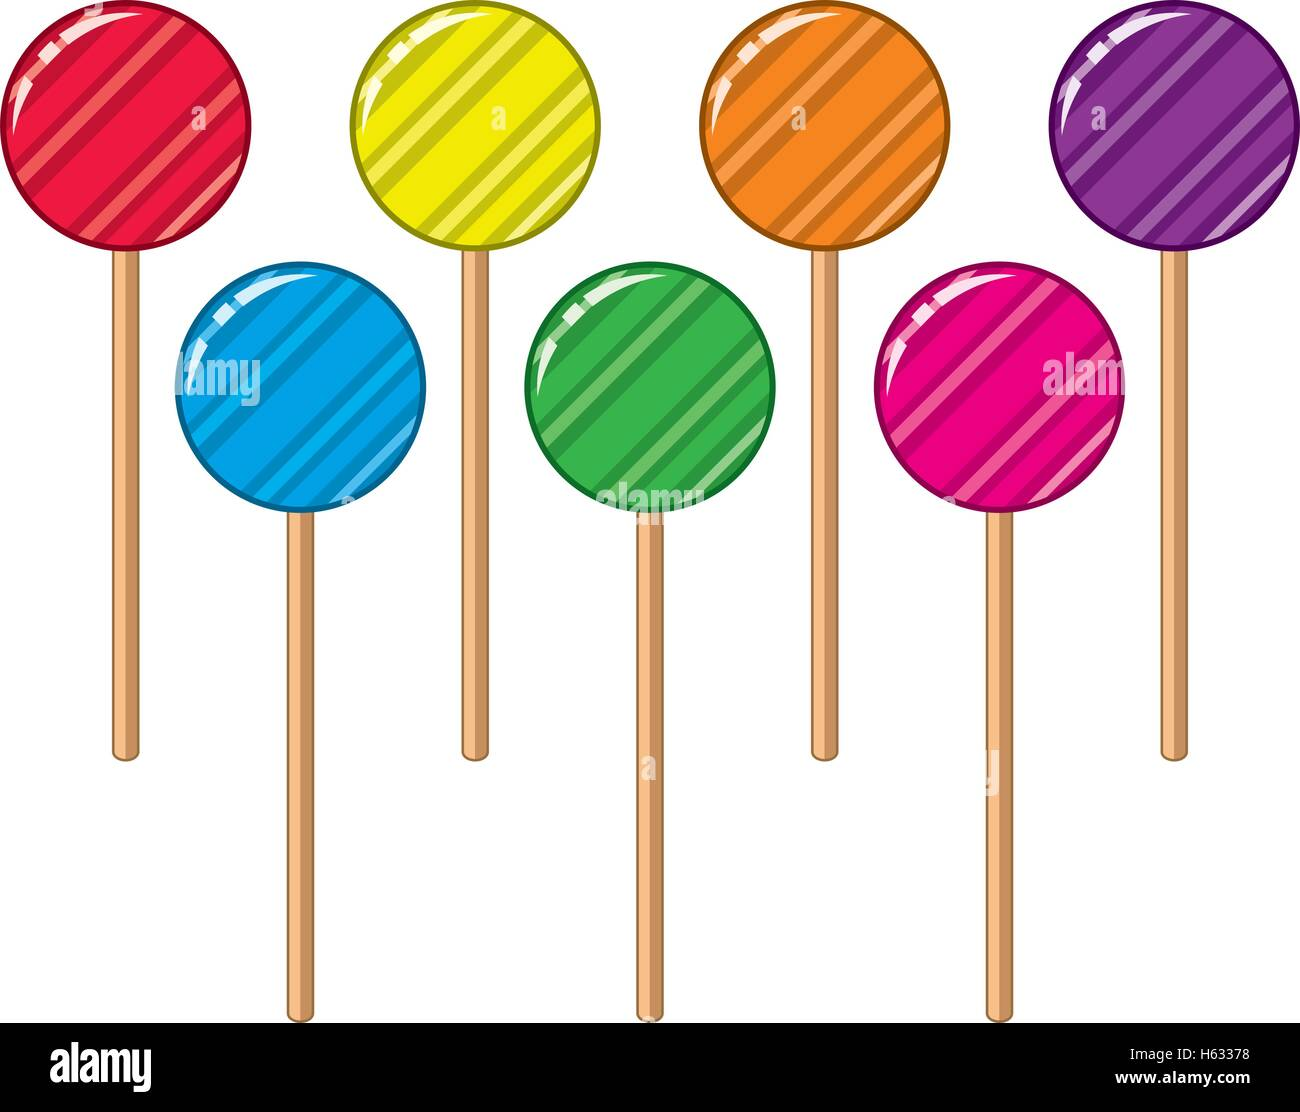 vector collection of colorful lollipop candy balls - Stock Vector